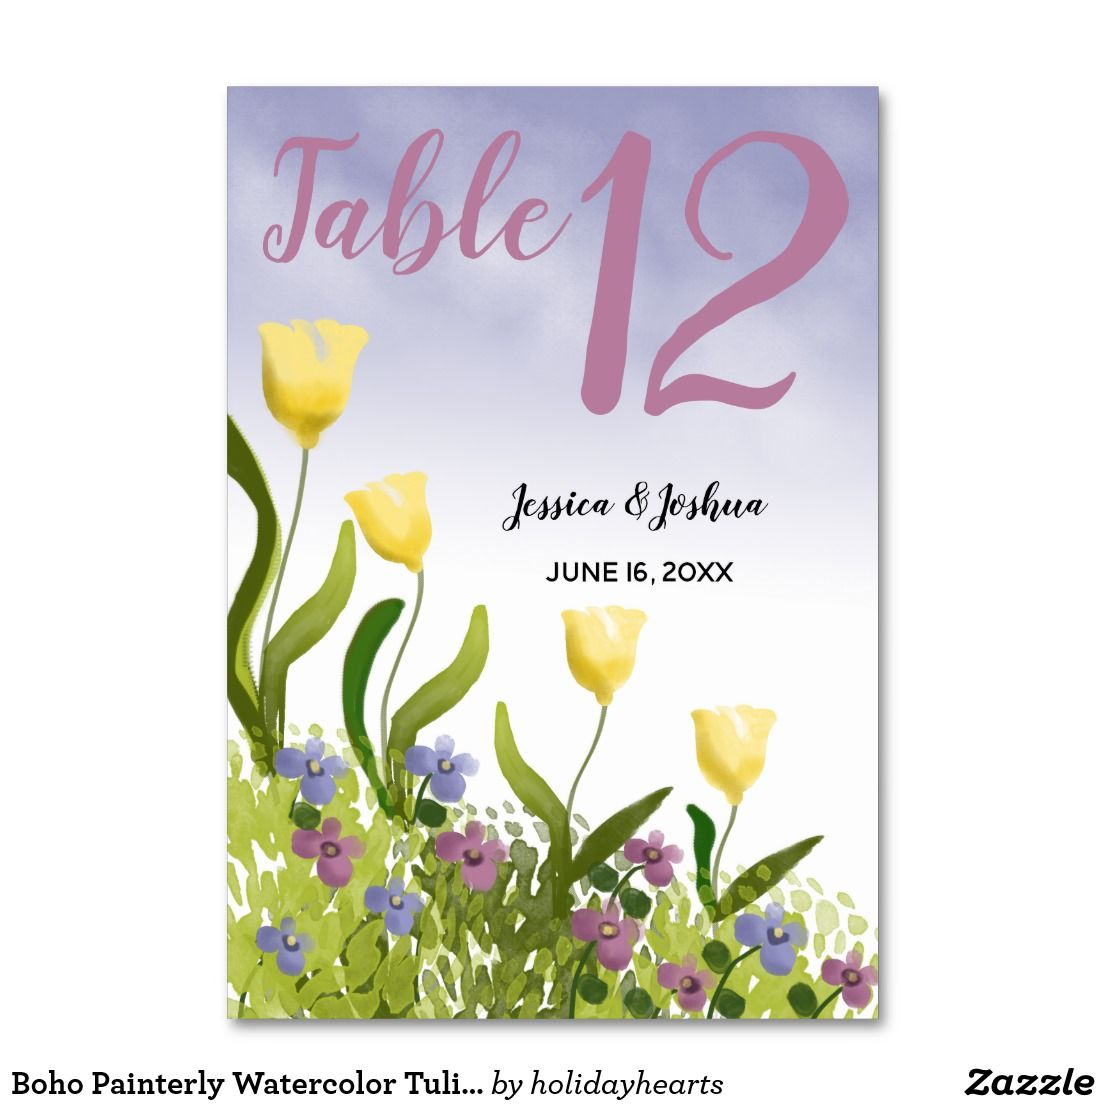 Boho Painterly Watercolor Tulips Violets Wedding Card Table